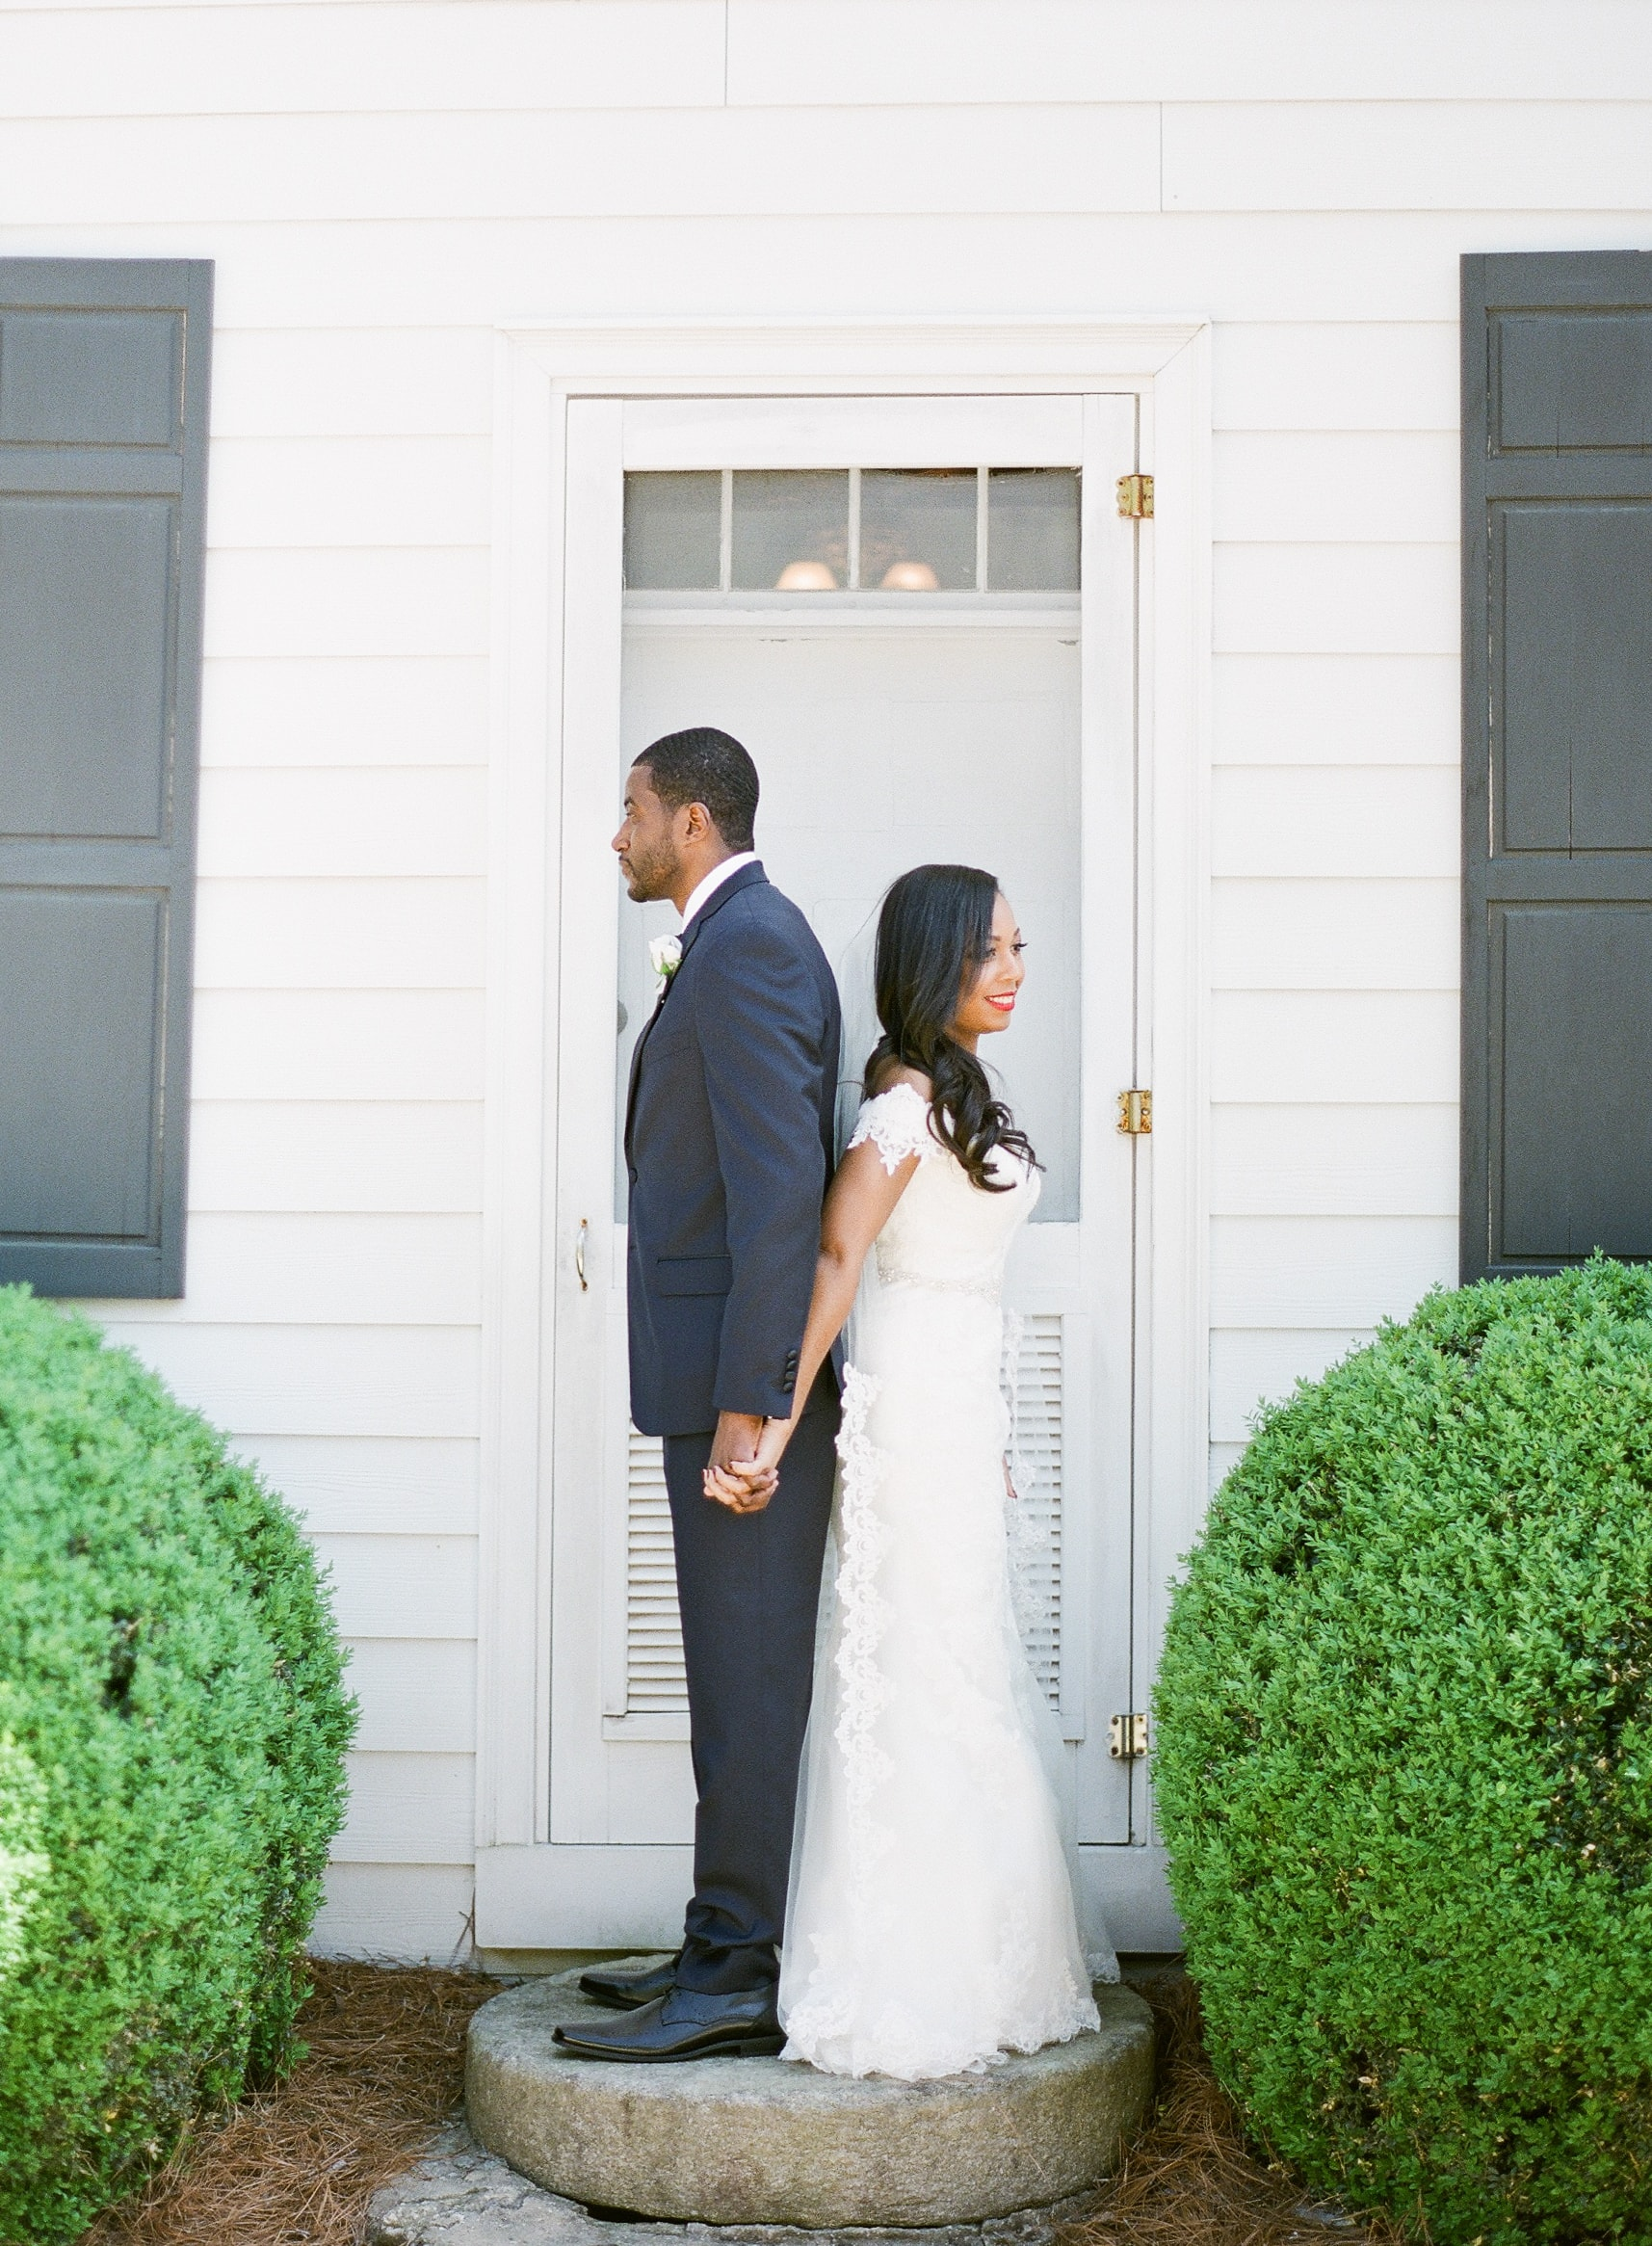 Couples first look before their wedding at Vesuvius Vineyards coordinated by Magnificent Moments Weddings